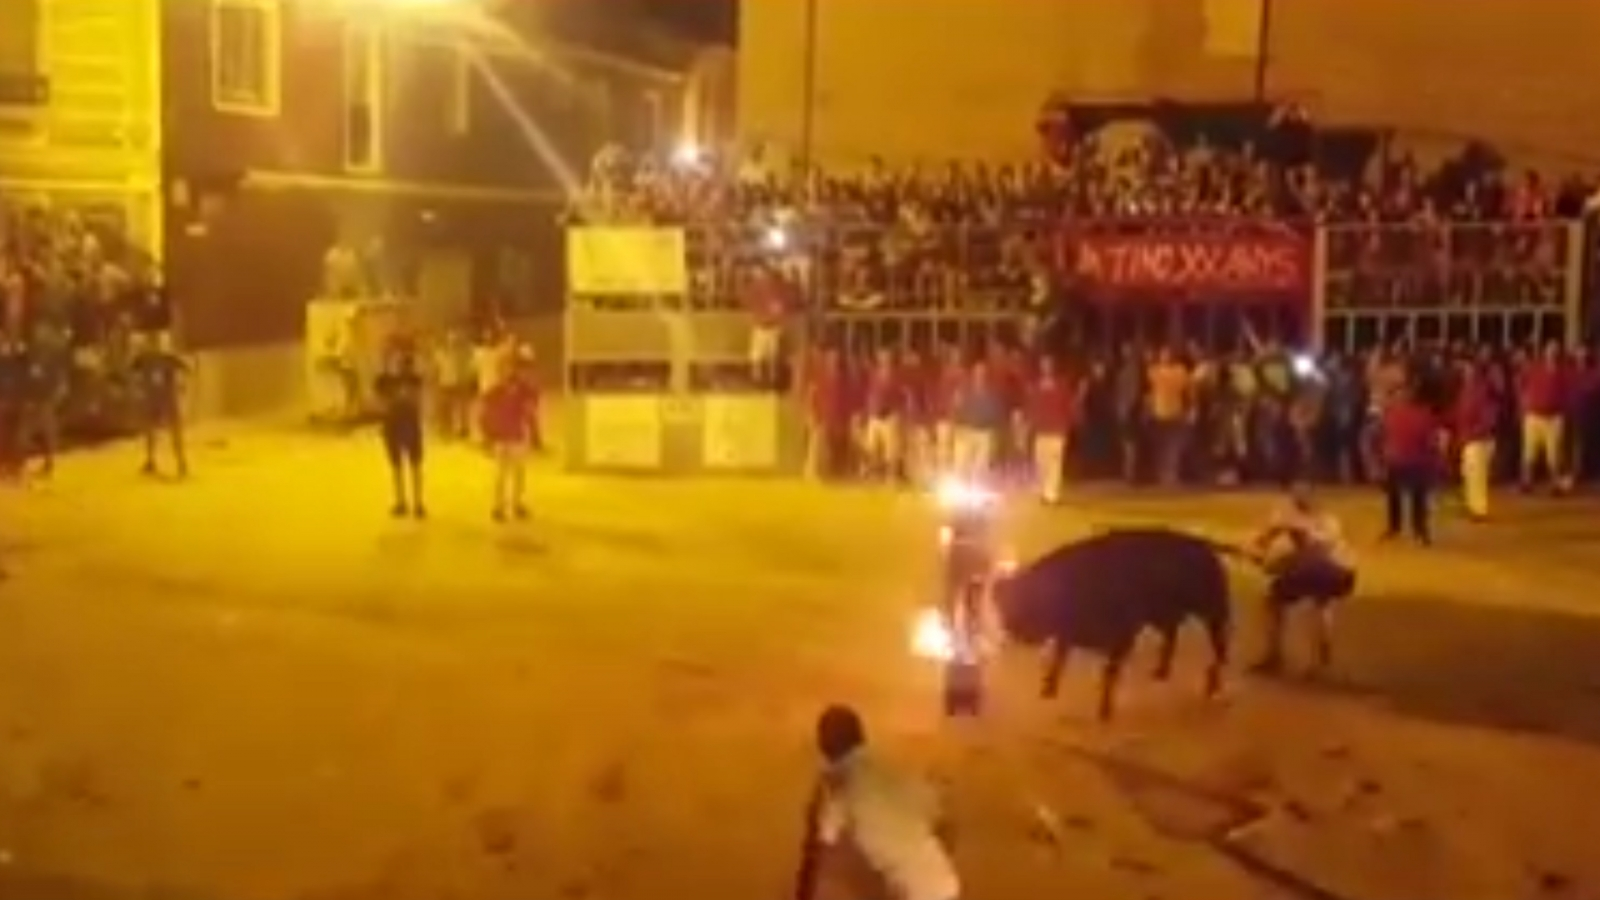 Shocking video shows bull dying after having horns set on fire